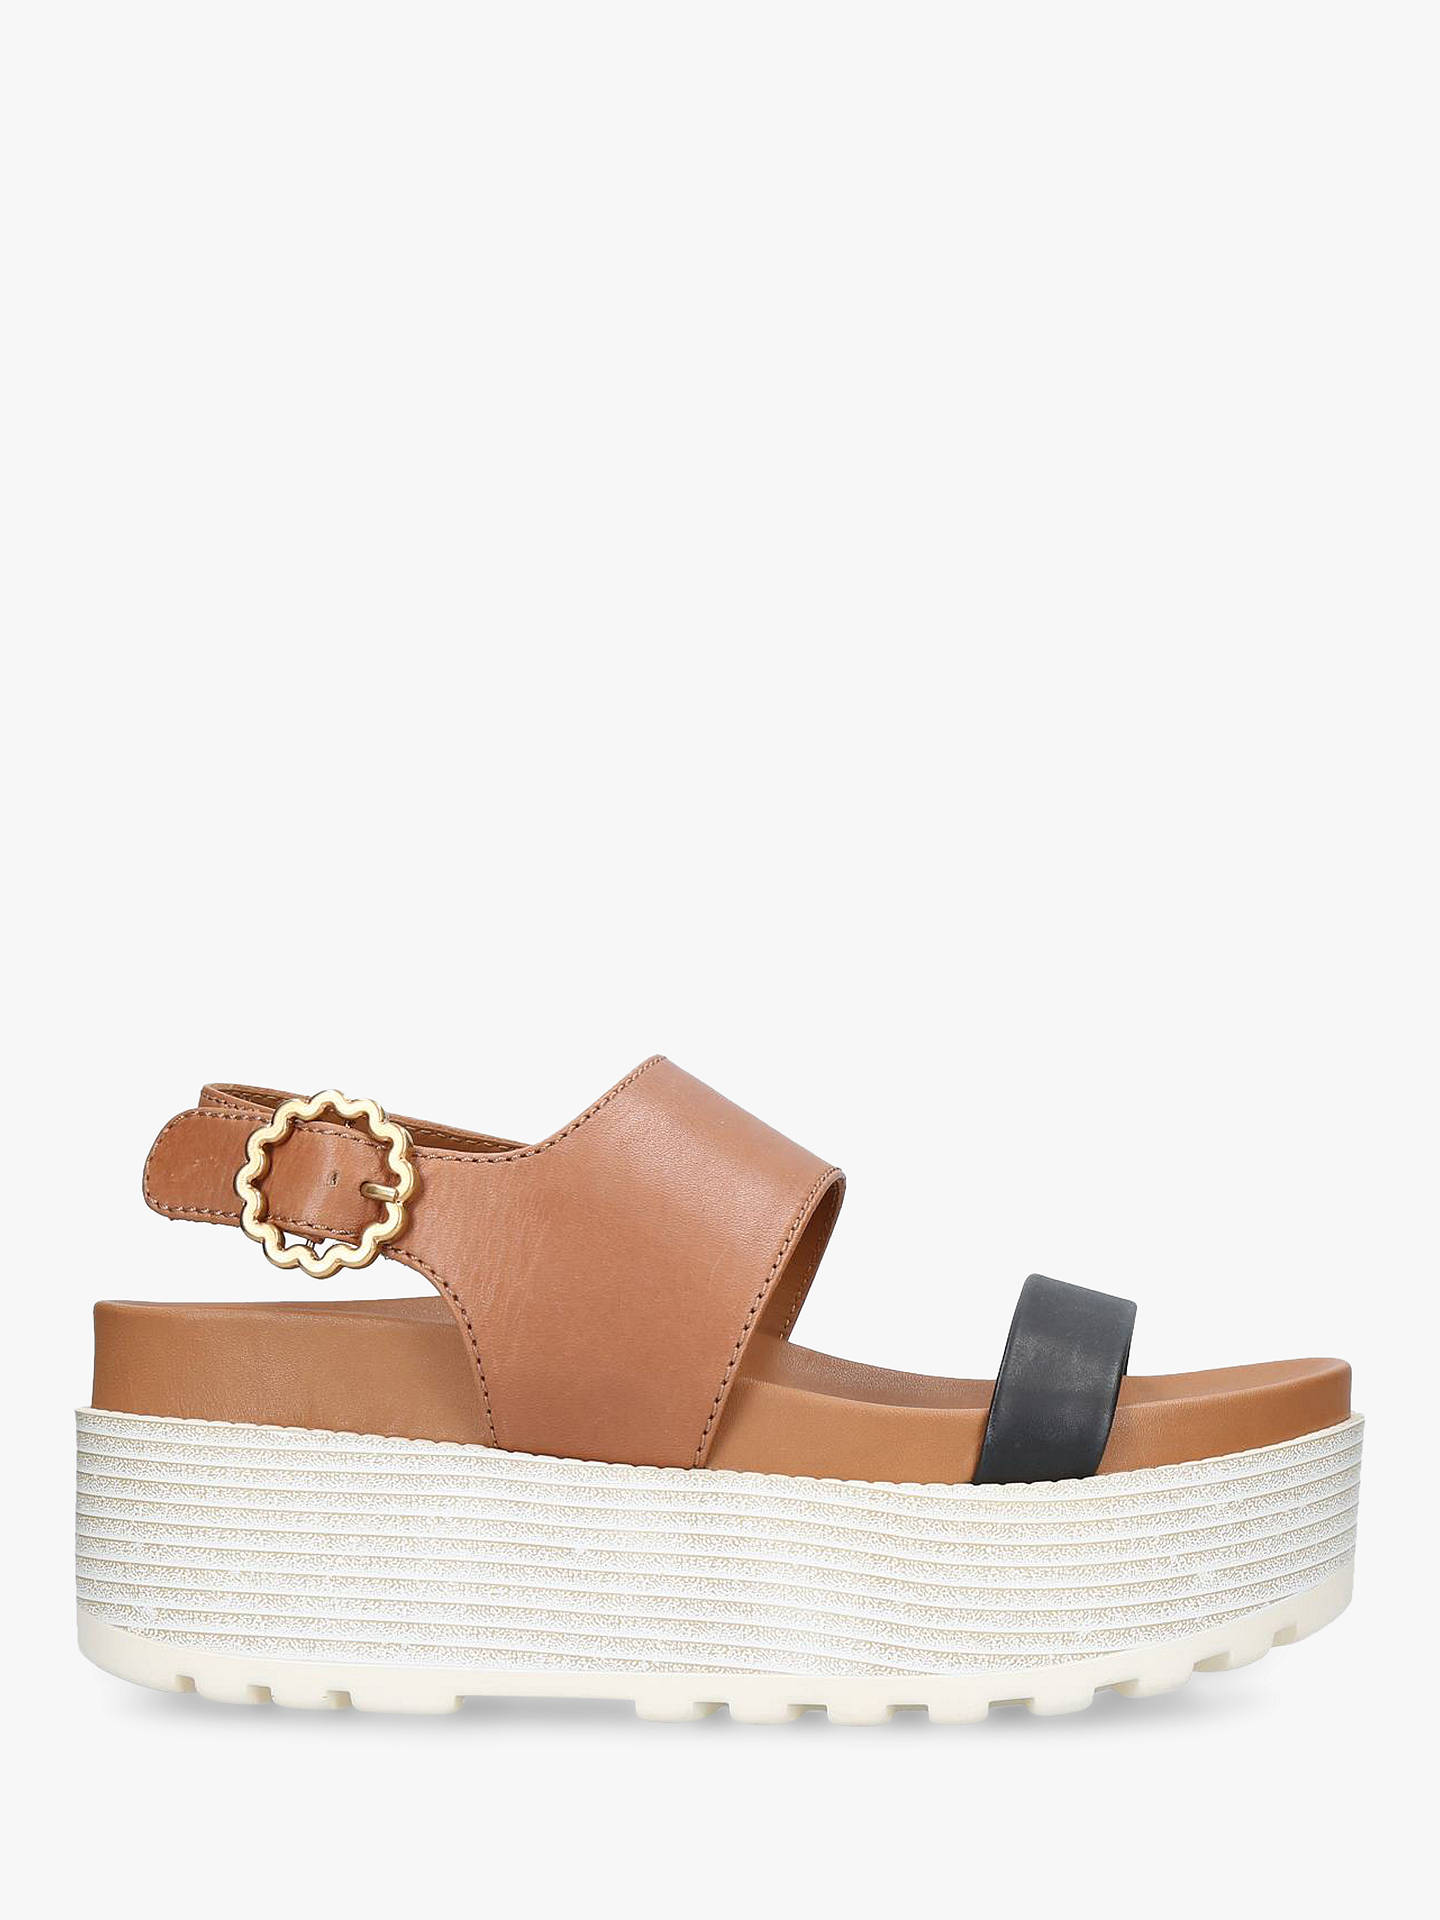 Buy See By Chloé Leather Buckle Detail Flatform Sandals, Black/Beige, 5 Online at johnlewis.com